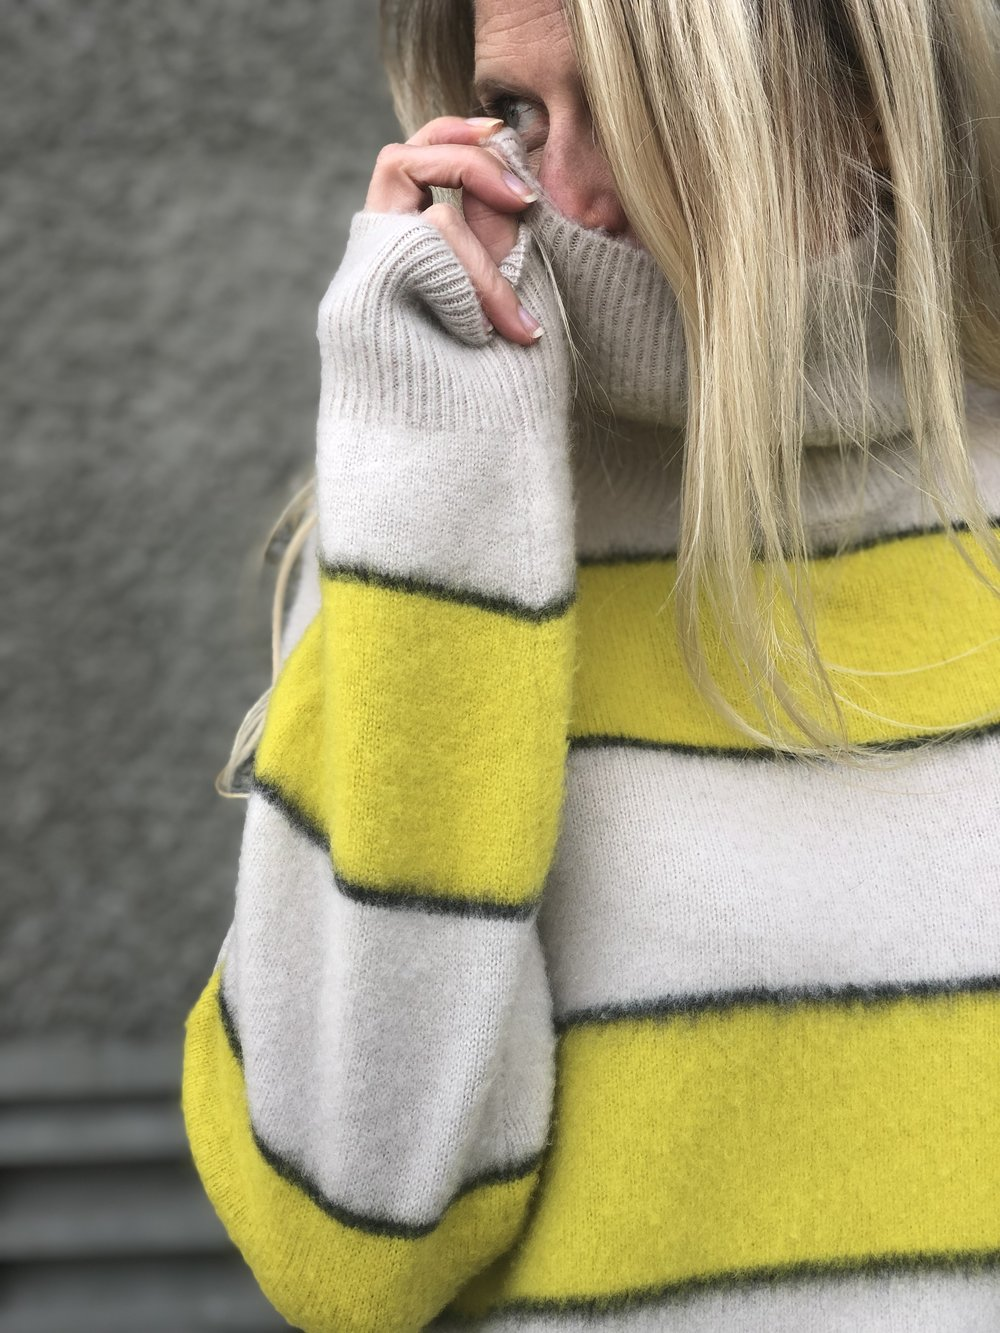 The honest to god softest sweater you will ever feel.